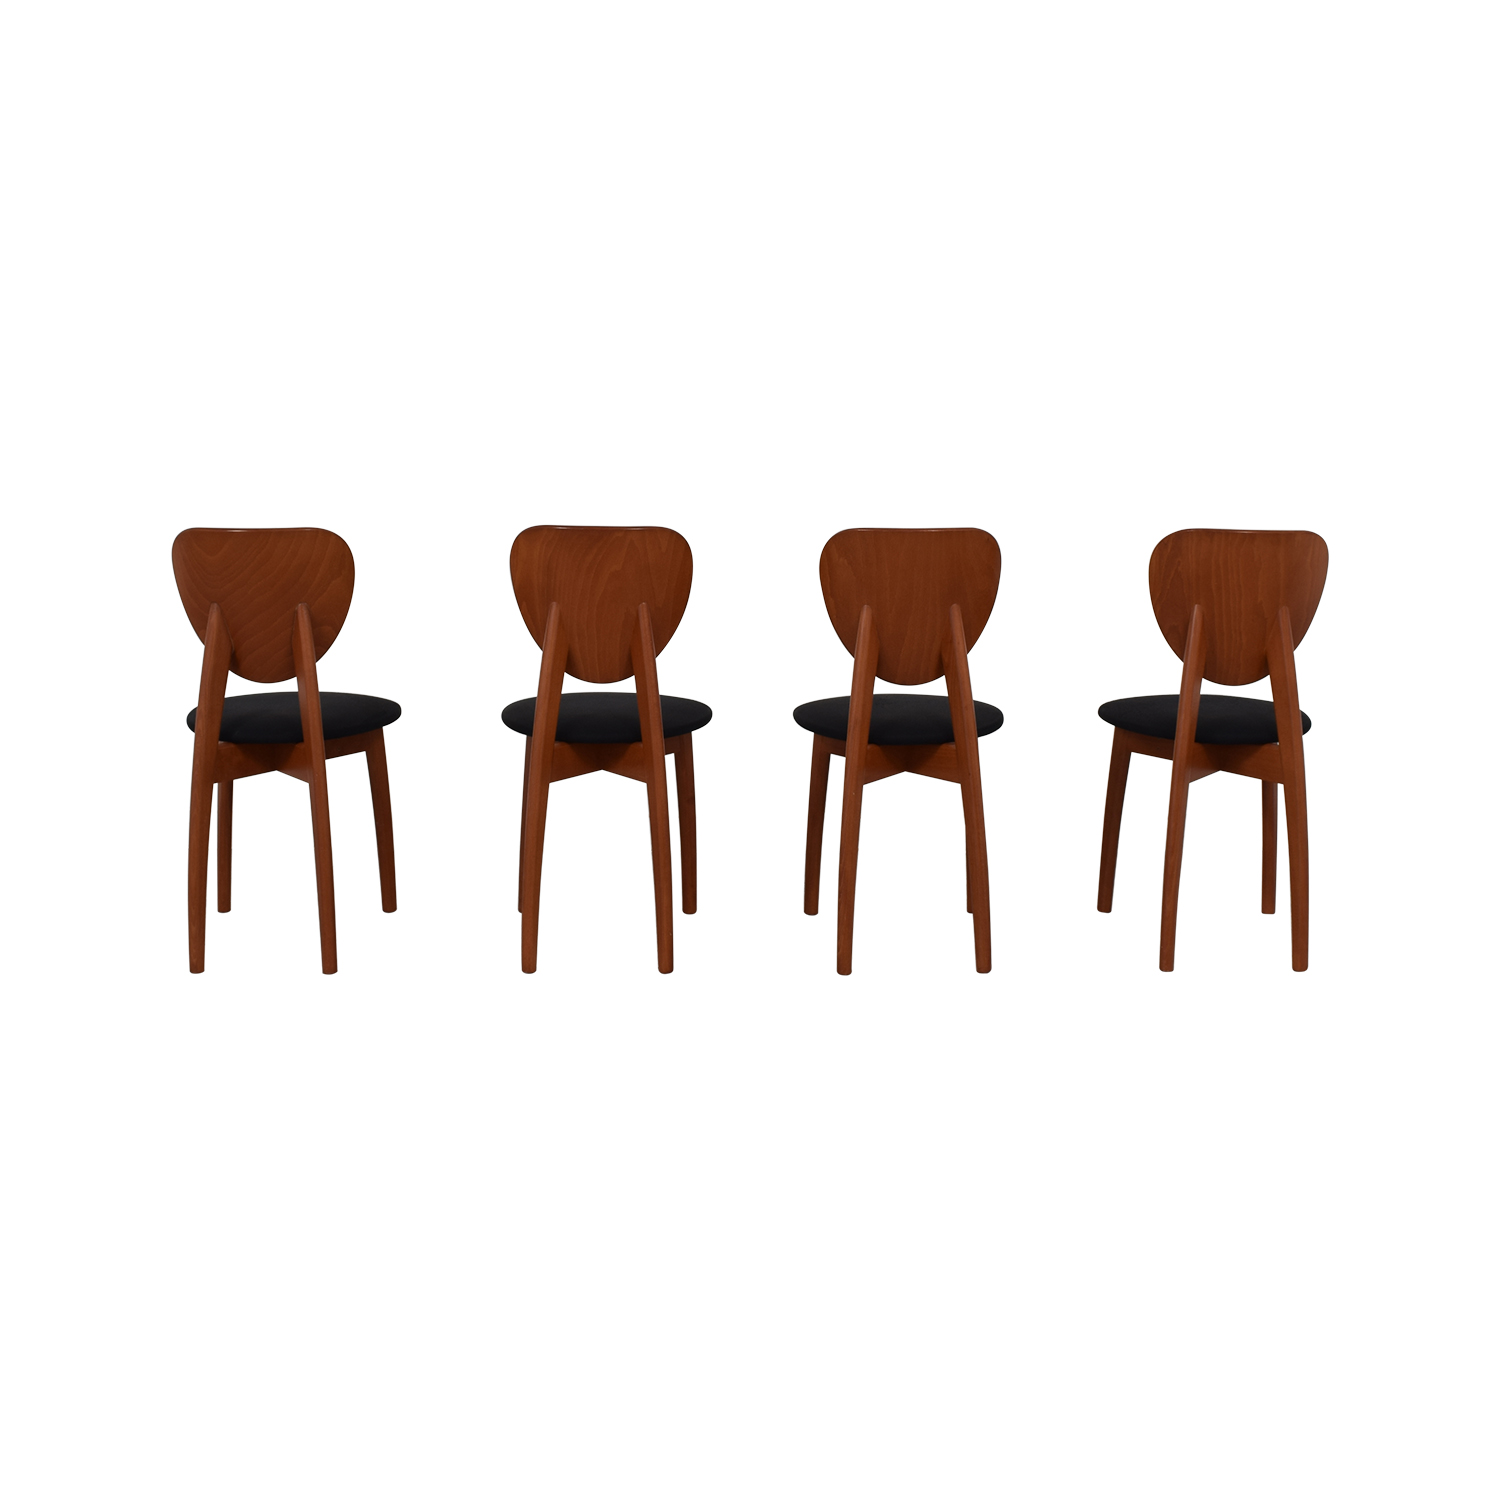 Calligaris Calligaris Dining Chairs coupon